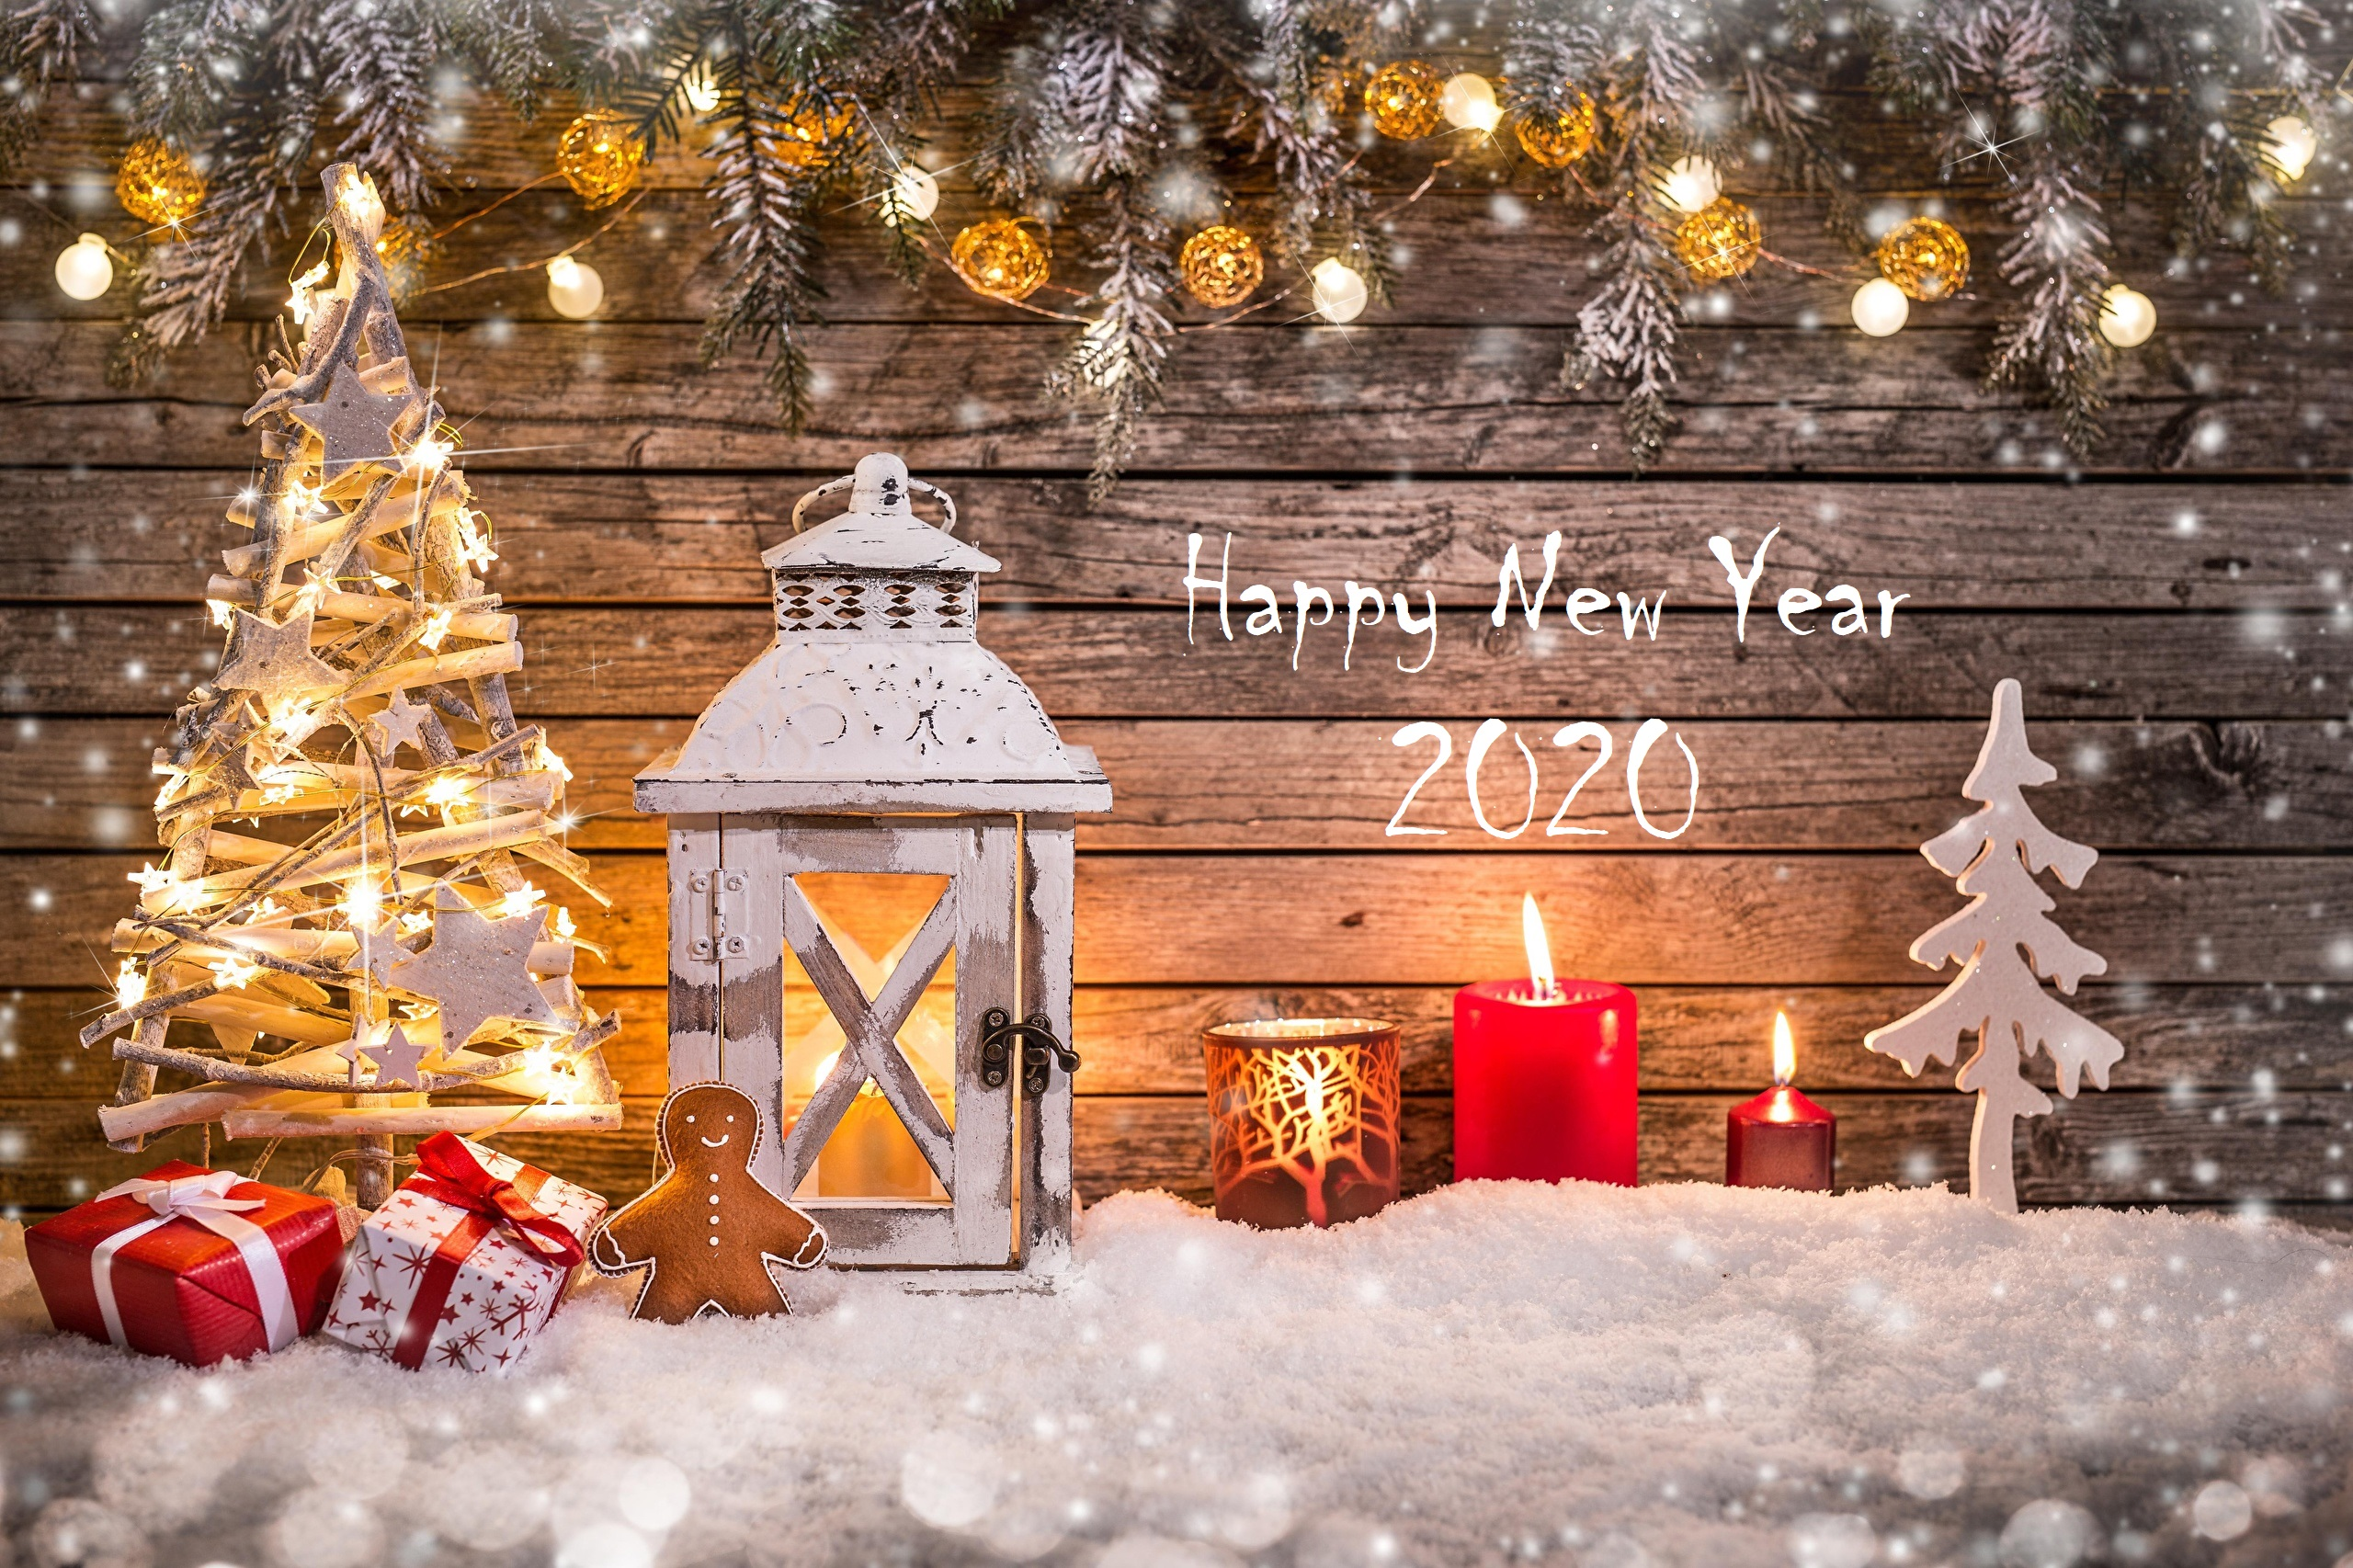 New Year 2020 HD Wallpaper Background Image 2560x1706 ID 2560x1706